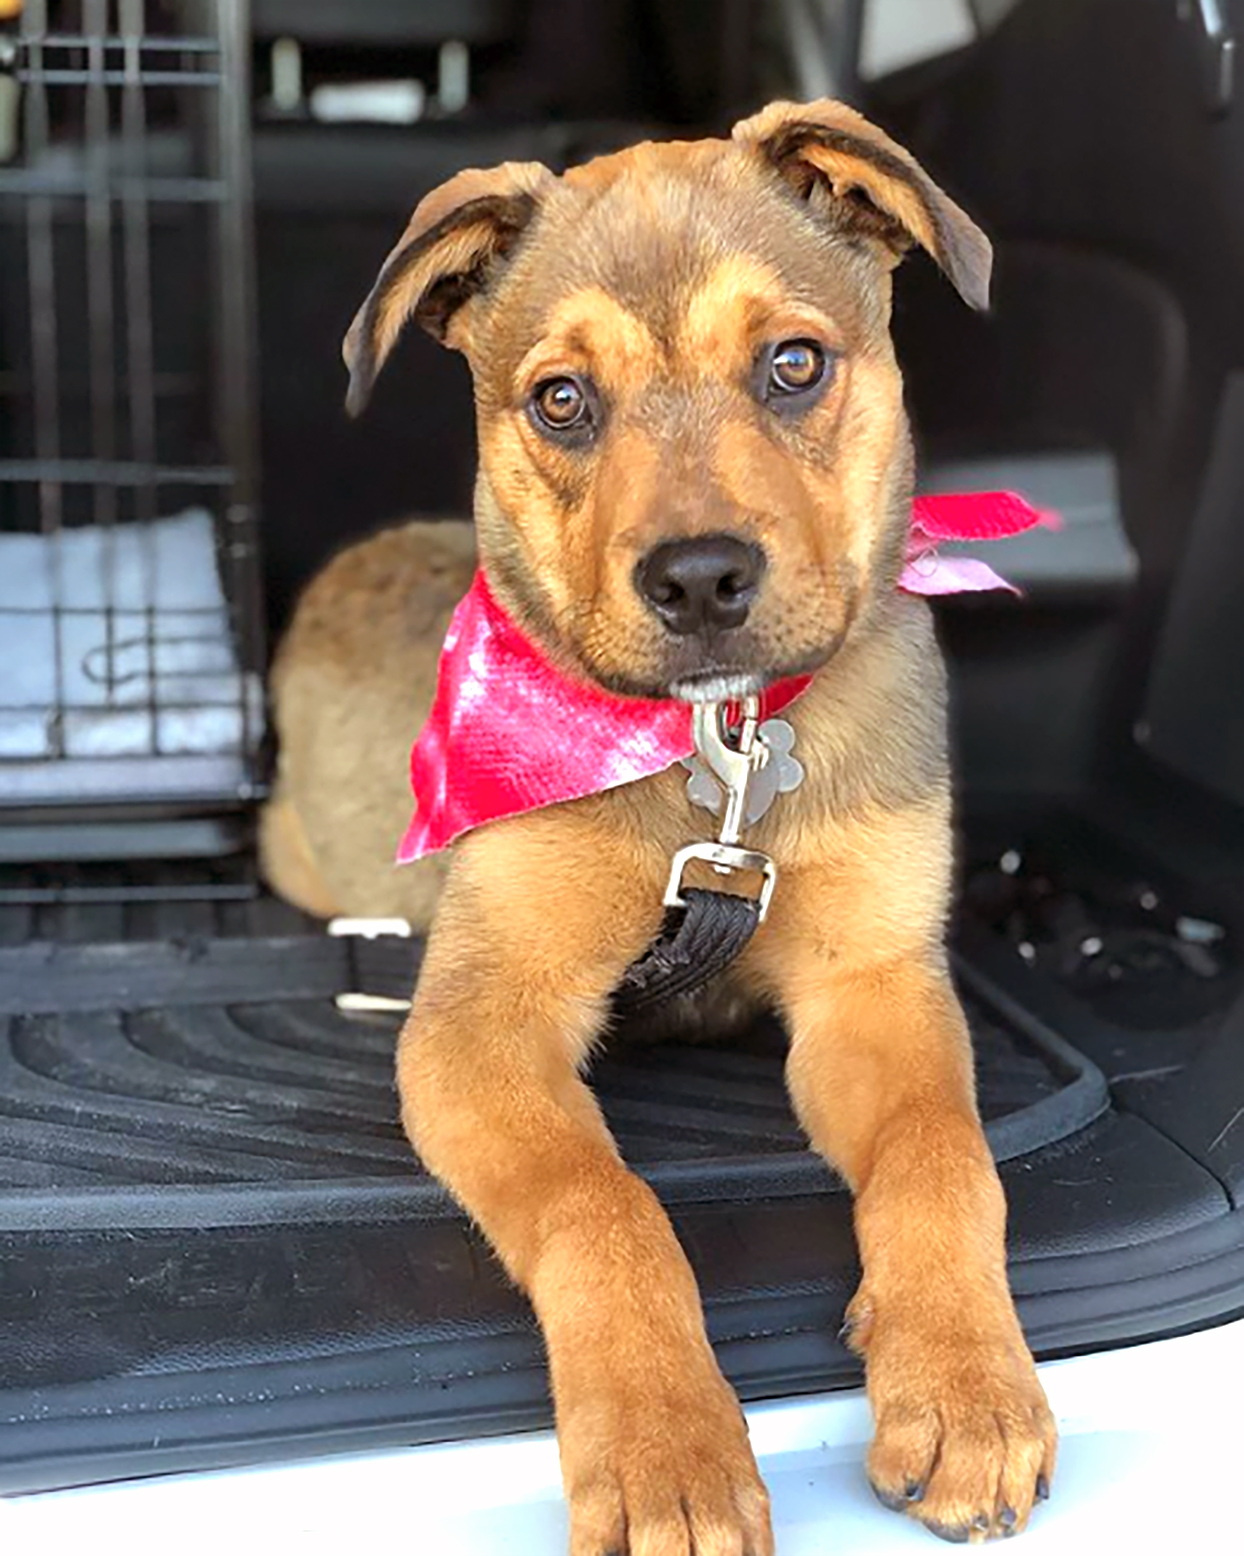 boxer lab mix with boxer markings and labrador fur